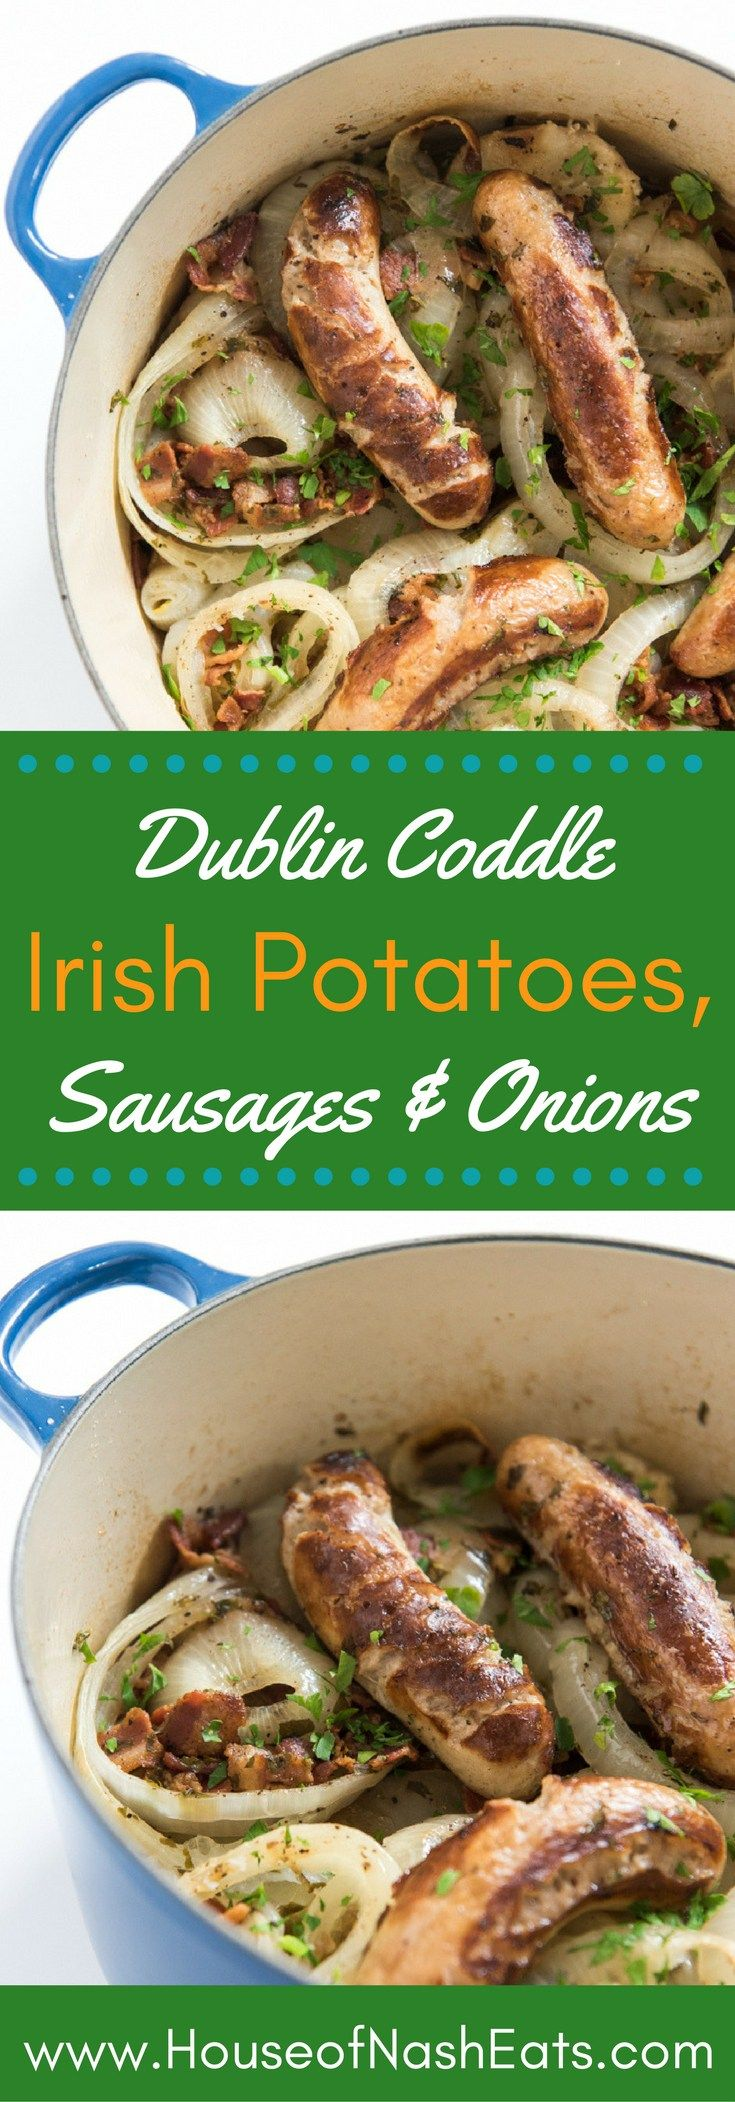 Quick easy irish potato recipes